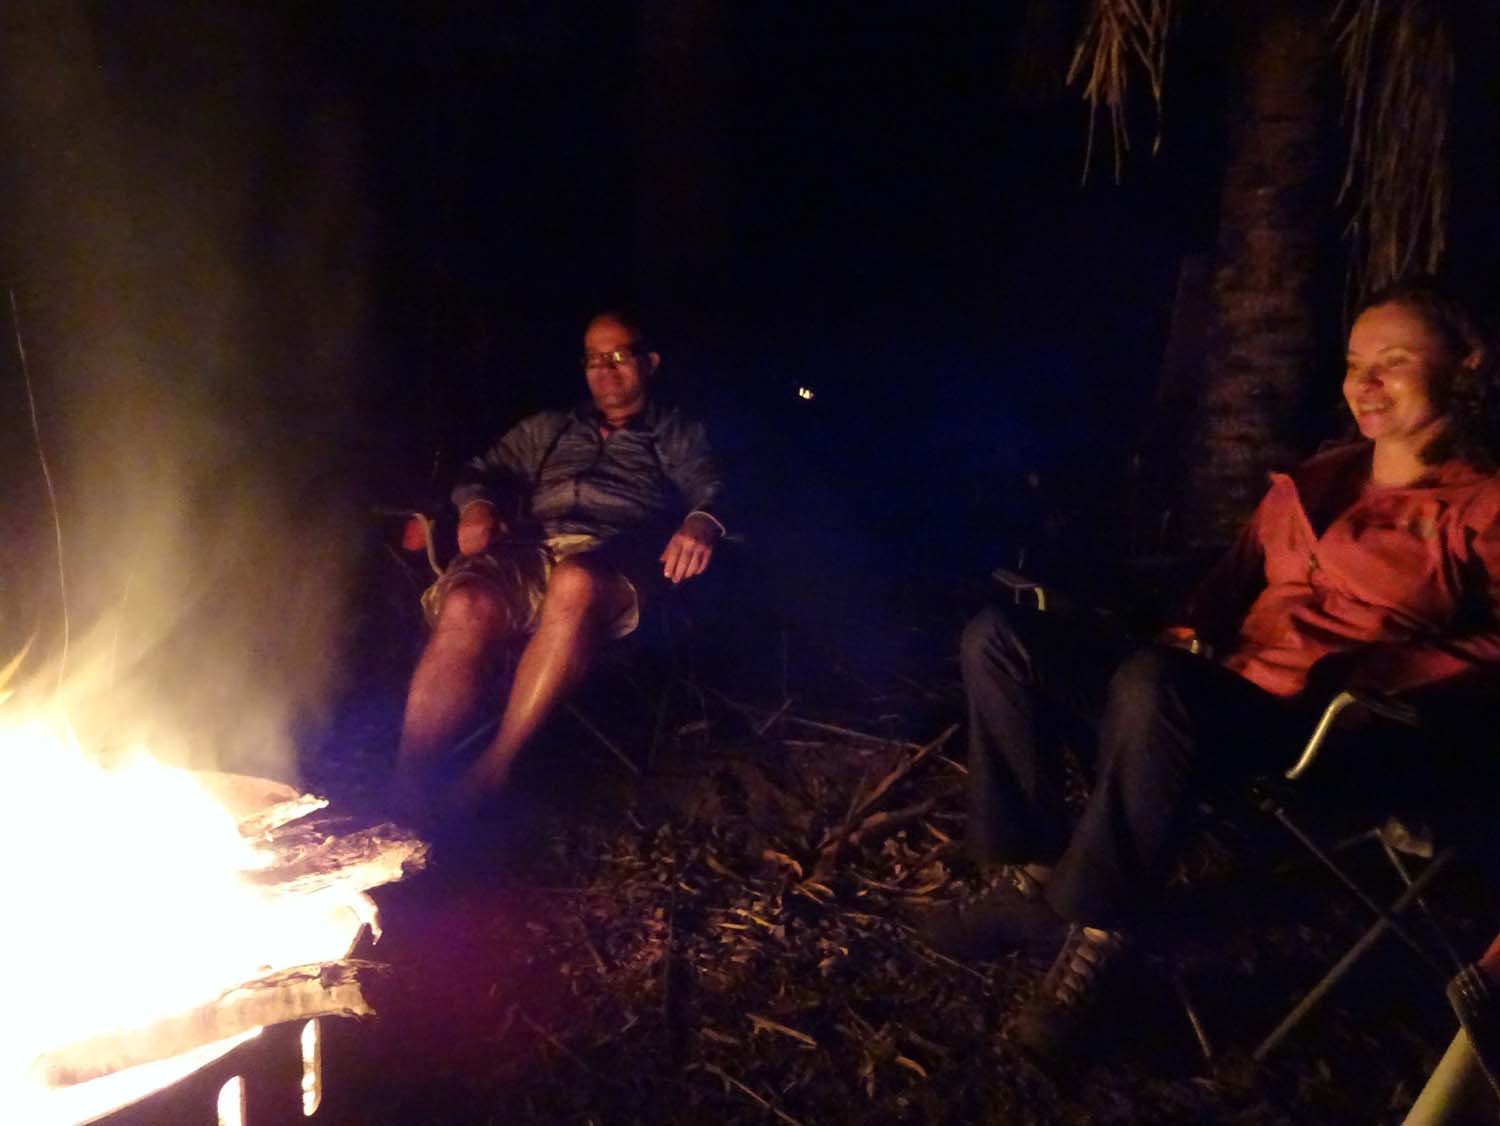 Our first night on the road is spent with Jan and Jeanet in Eurimbula NP